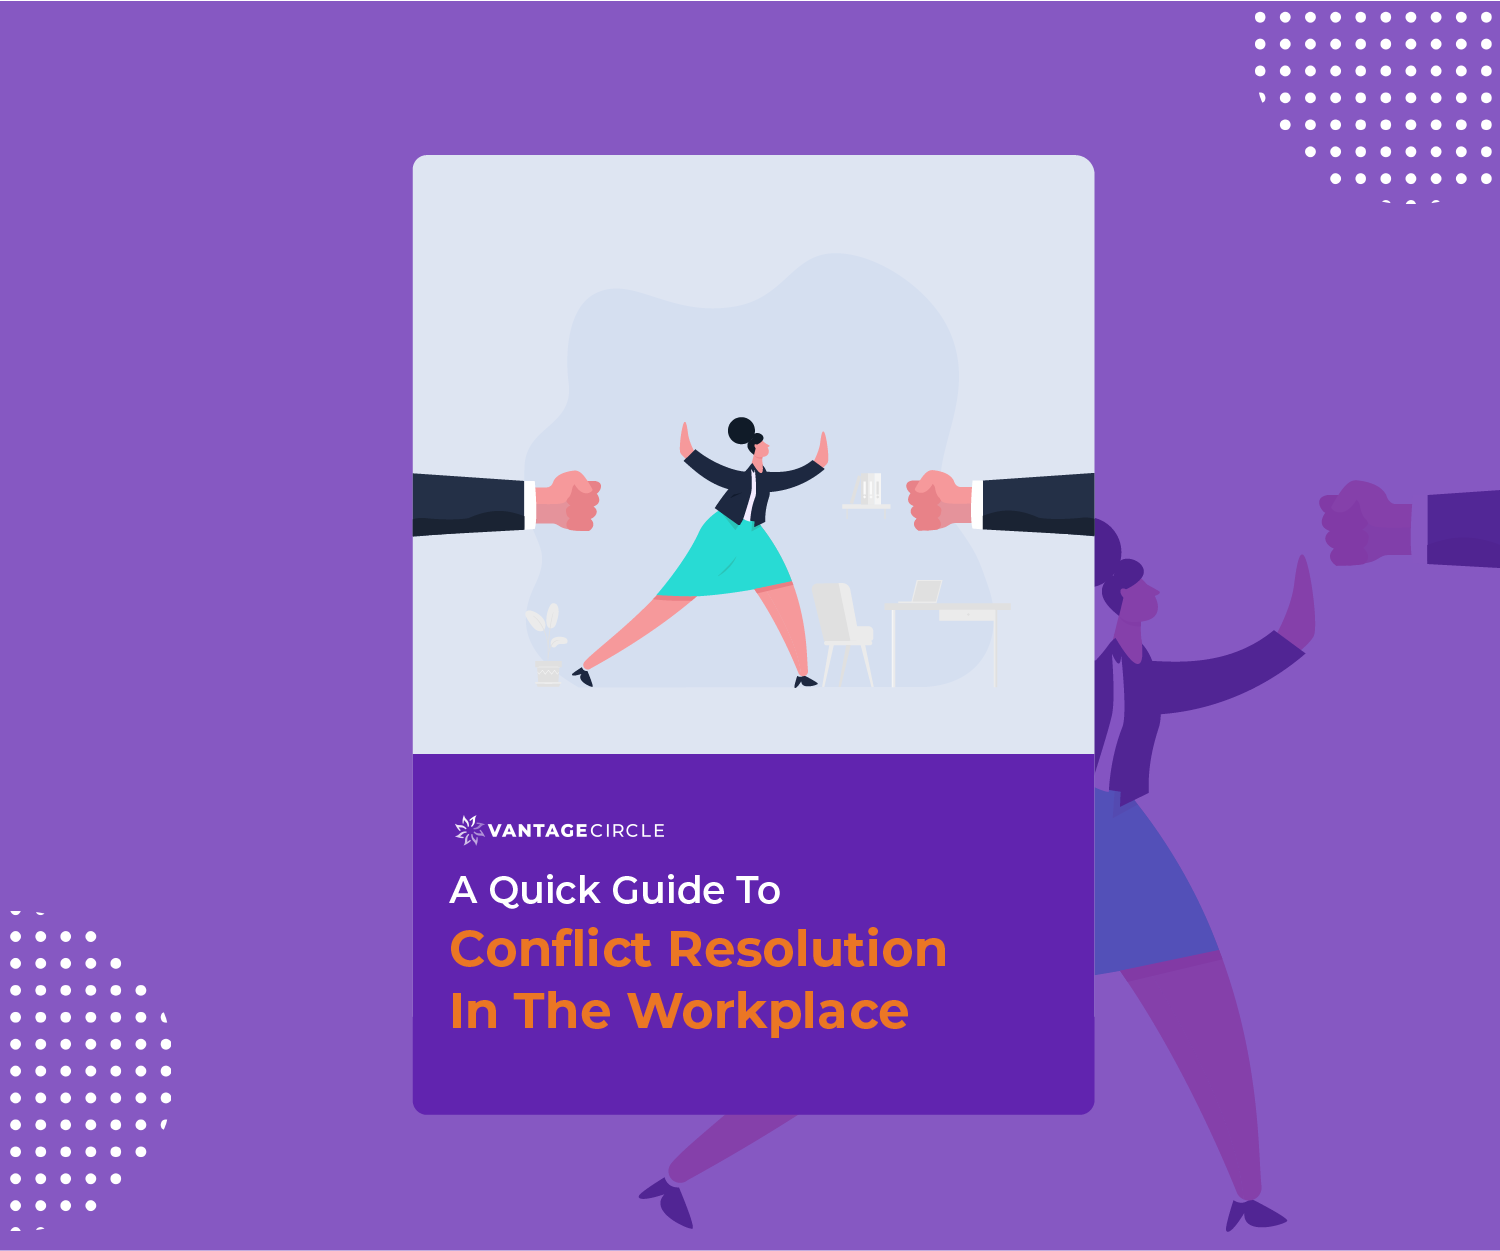 A Quick Guide To Conflict Resolution In The Workplace